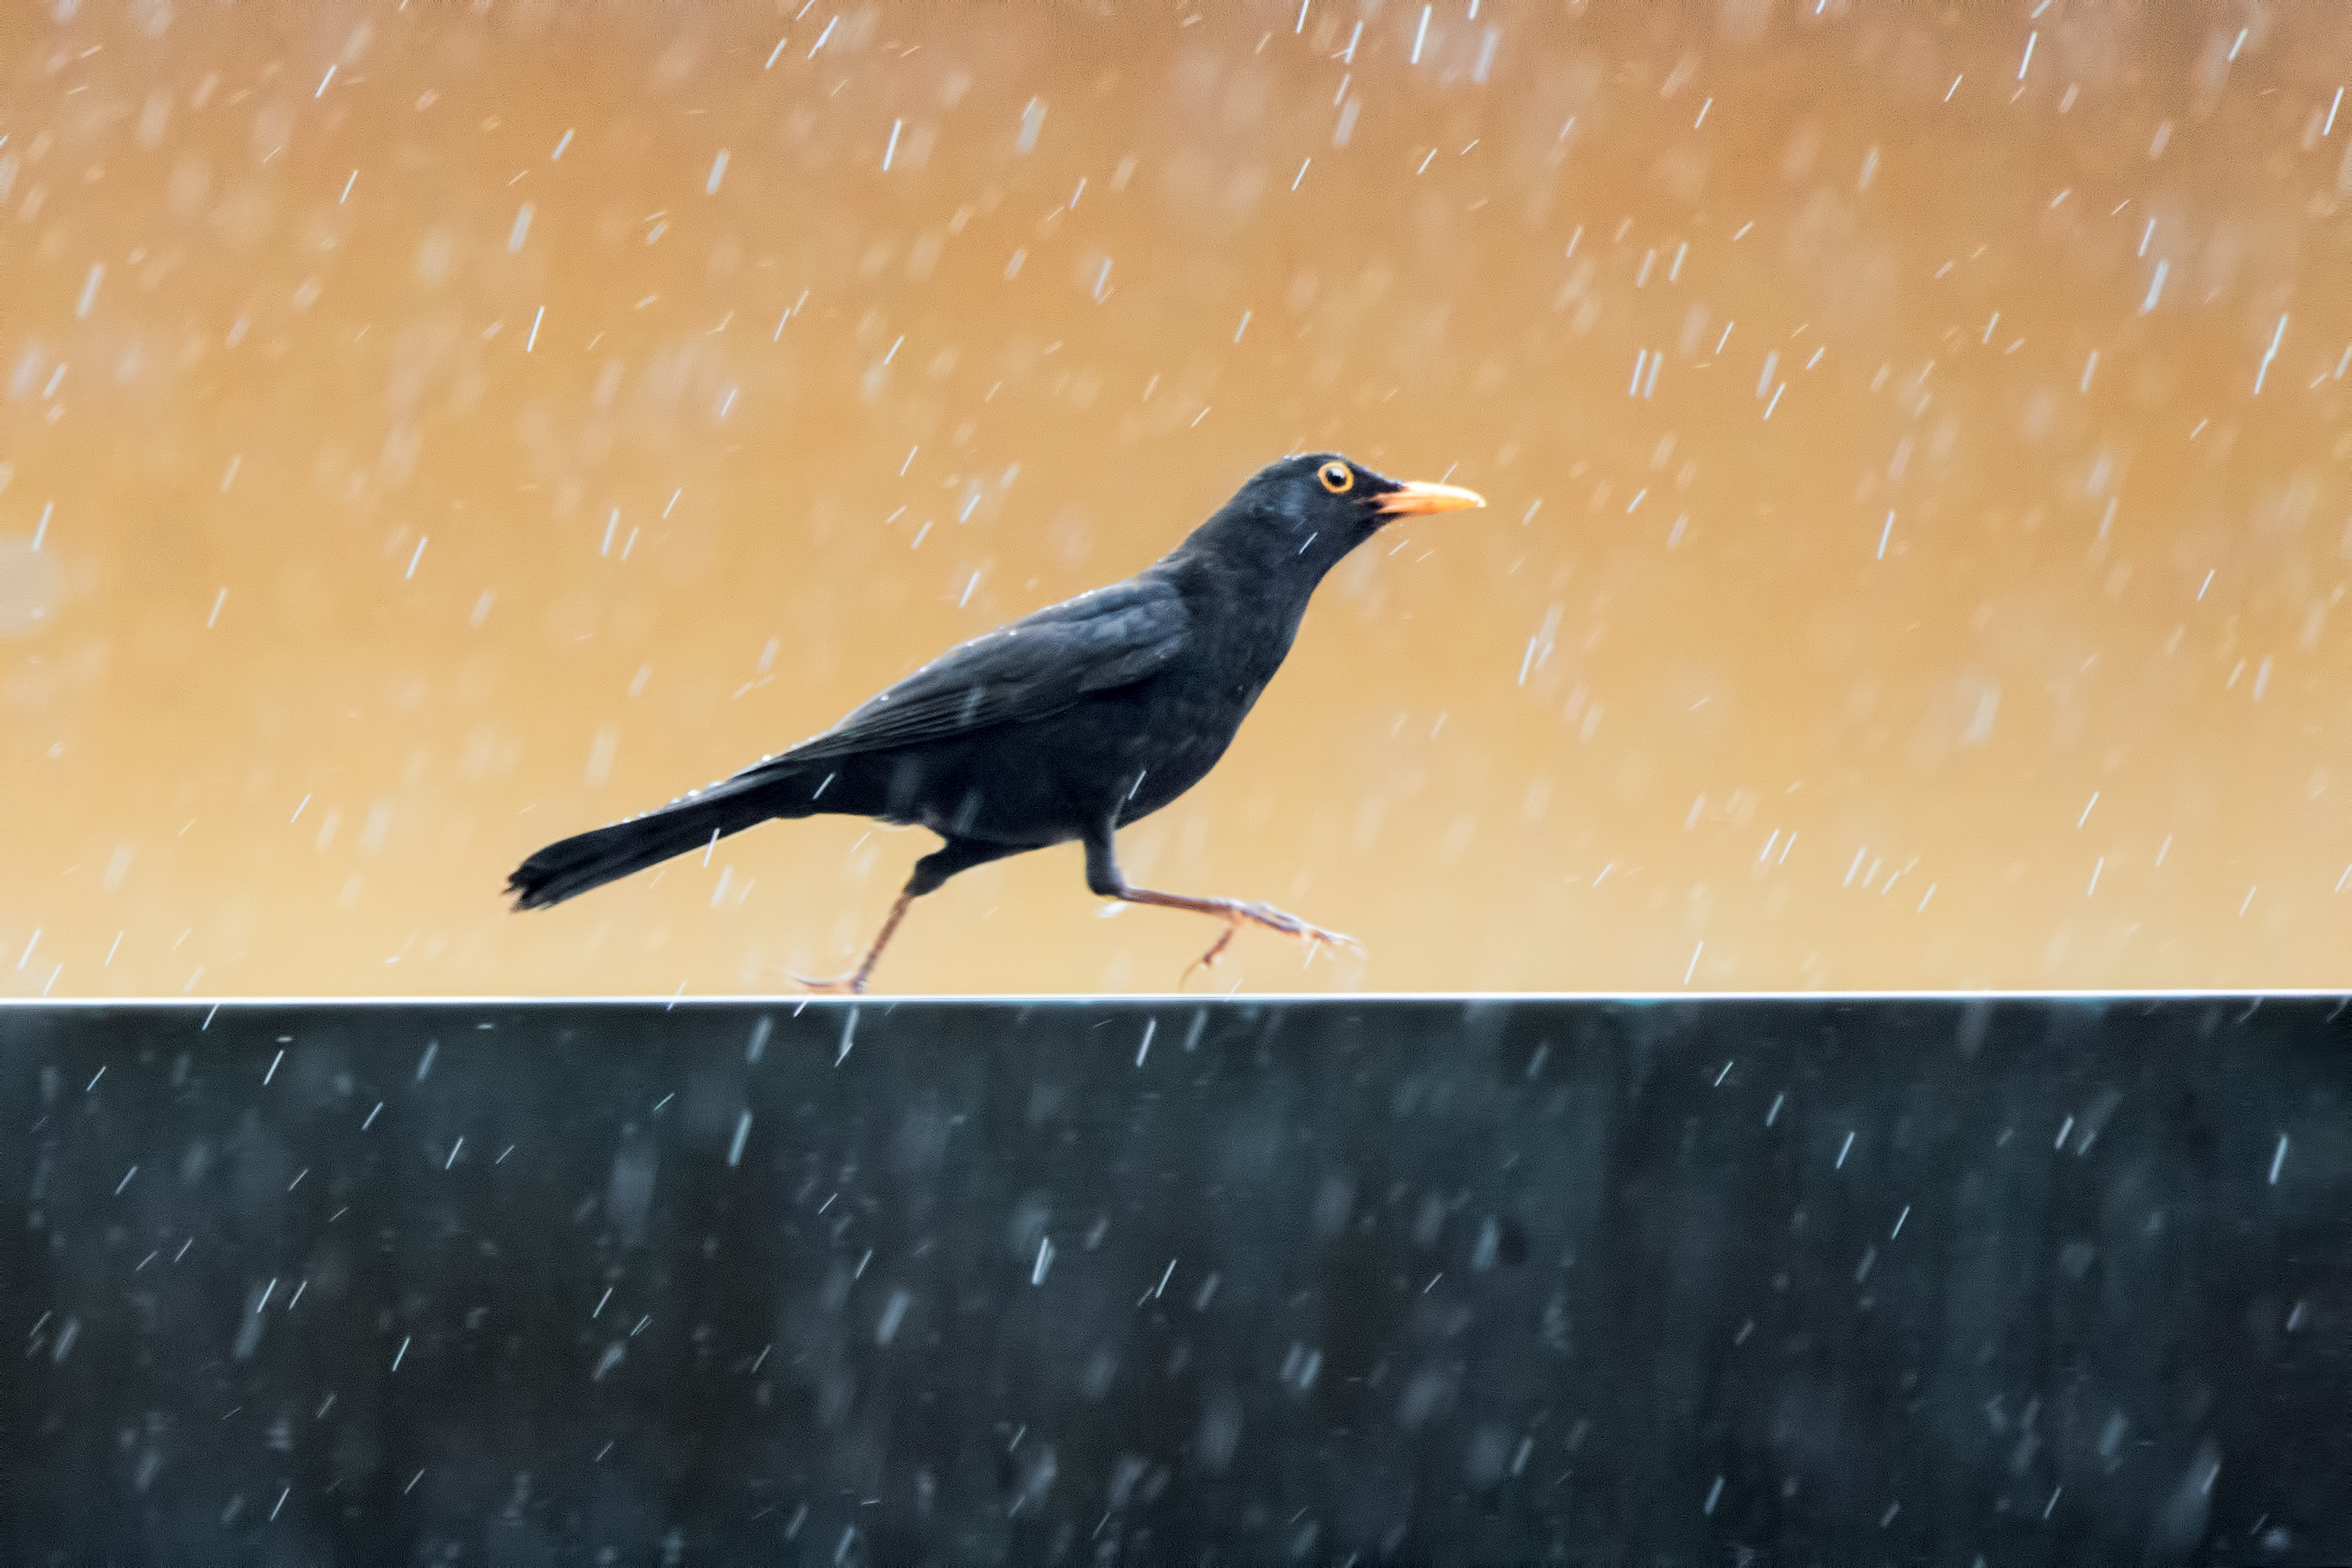 A blackbird seems to dance or run along a fence in the rain, droplets pictured, and his orange-capped eye stands out